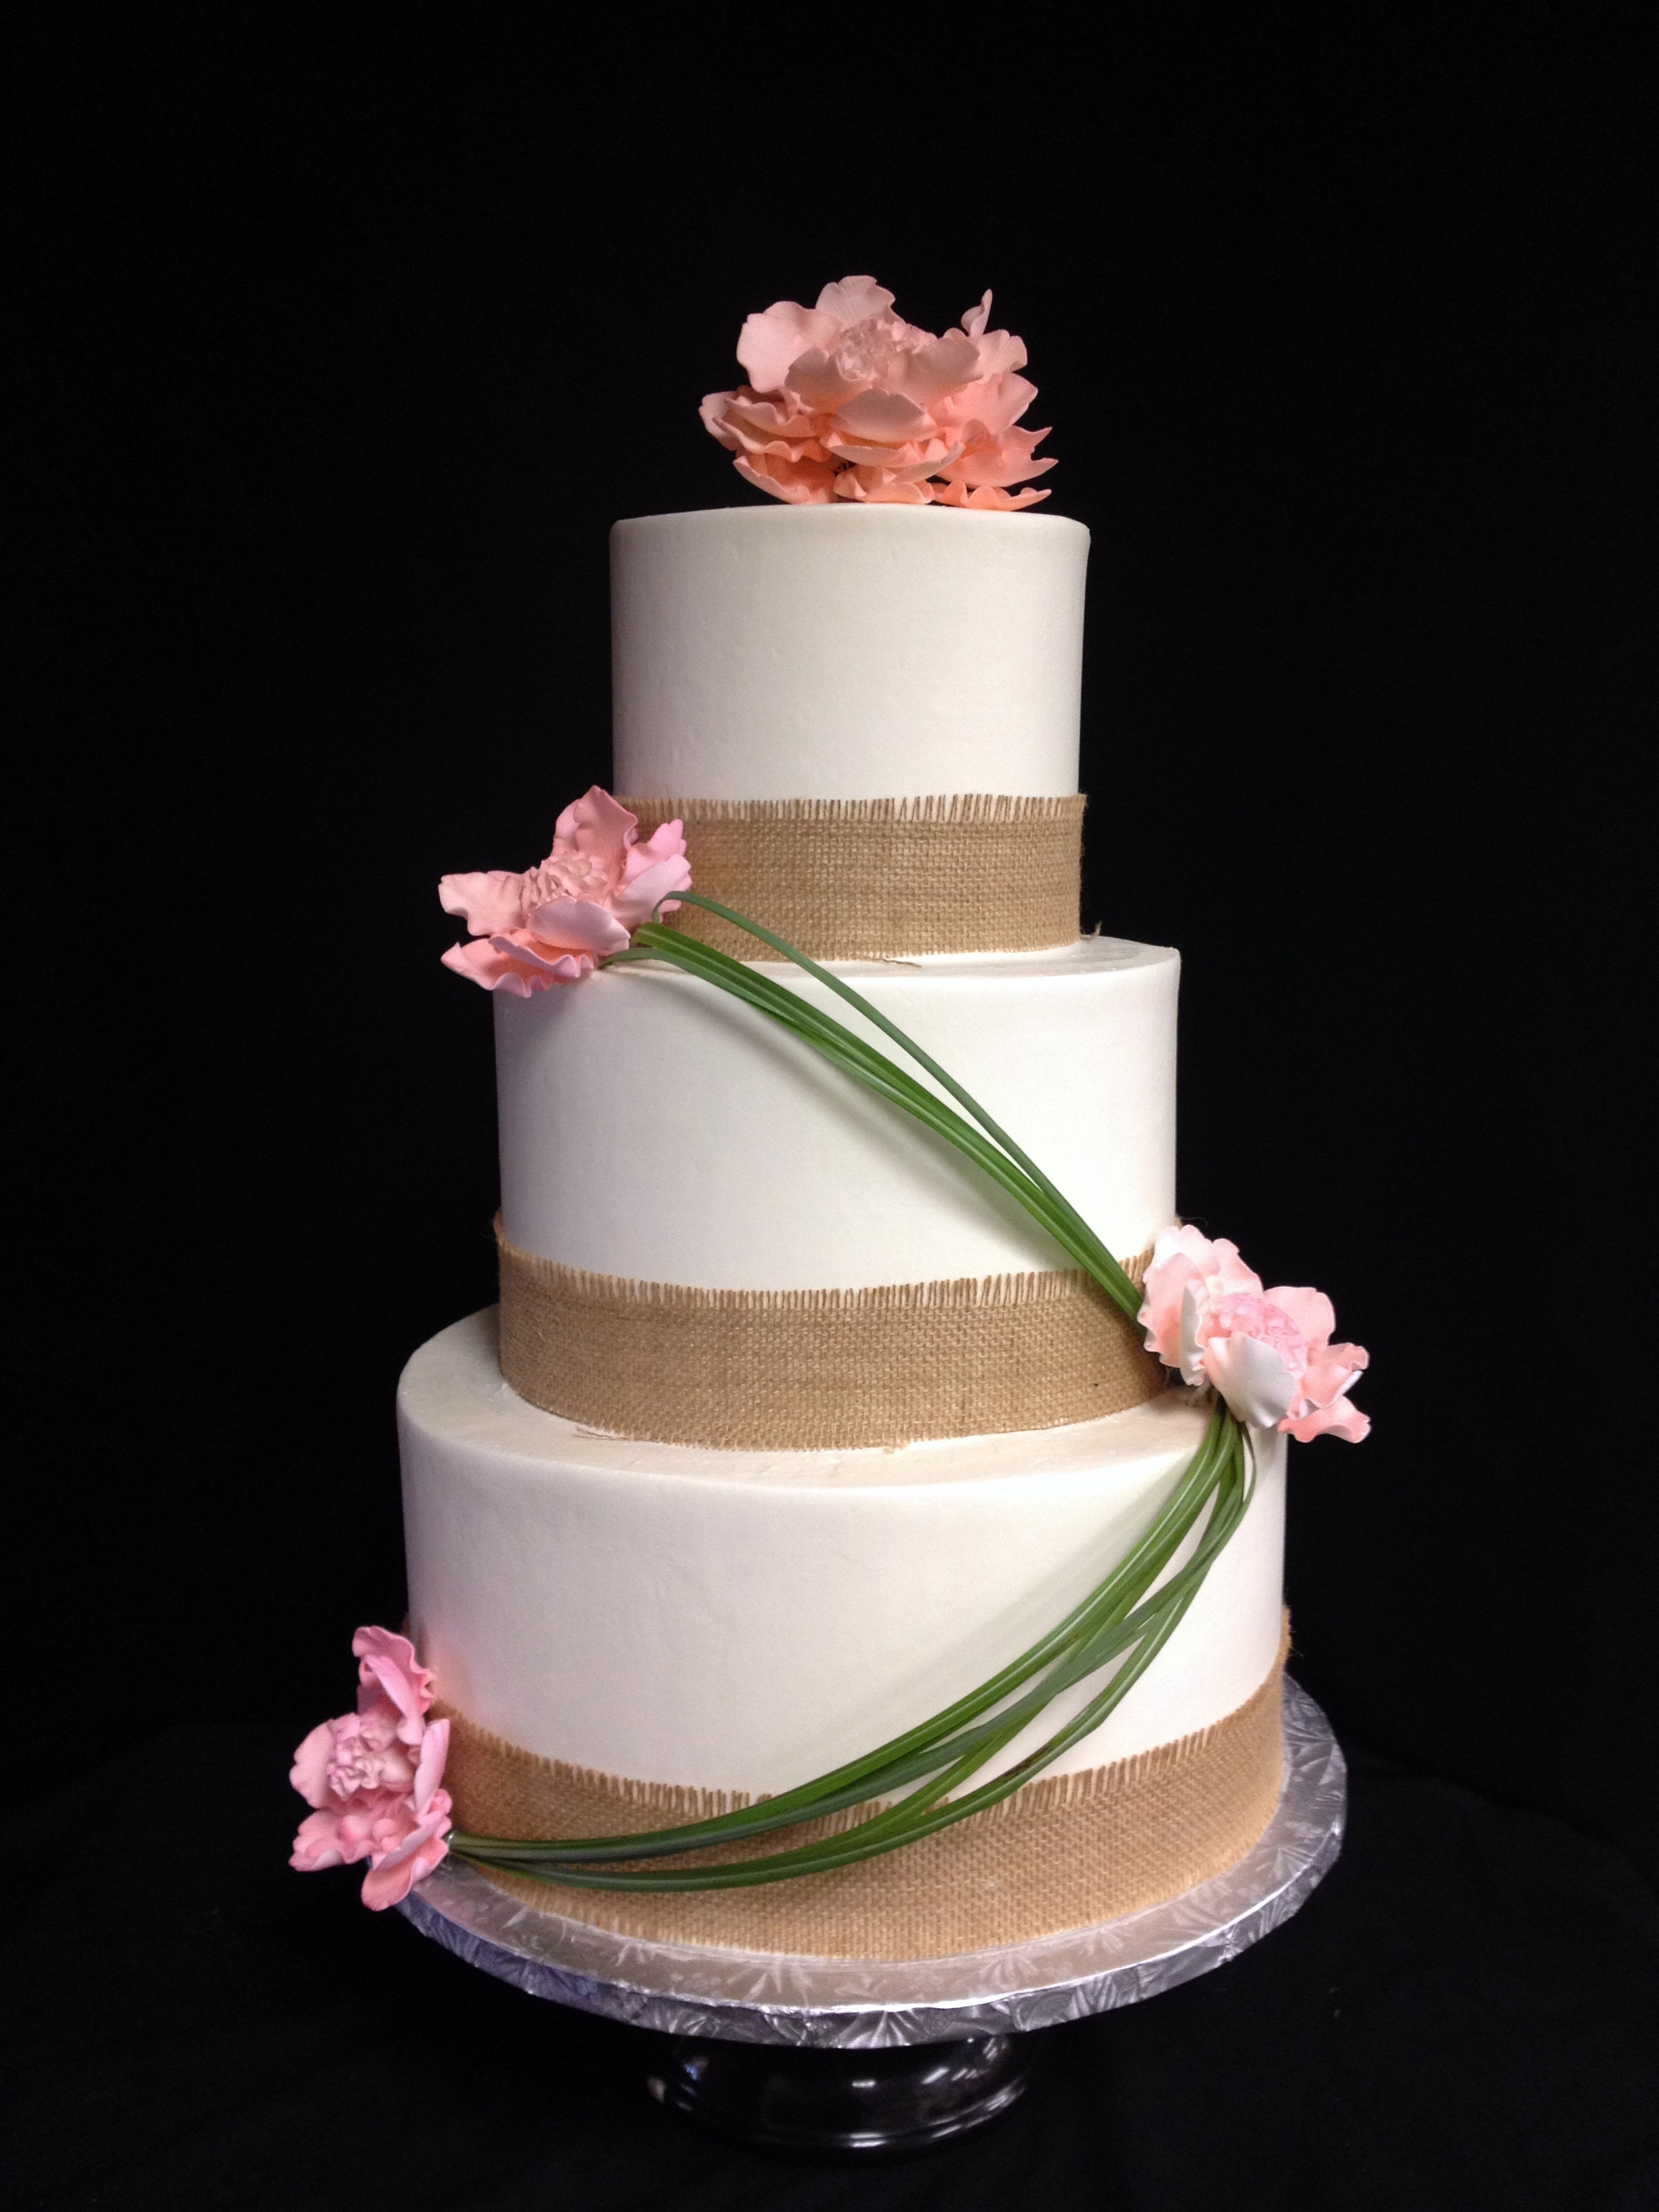 Wedding Cakes Burlap With Sugar Flowers And Grasses